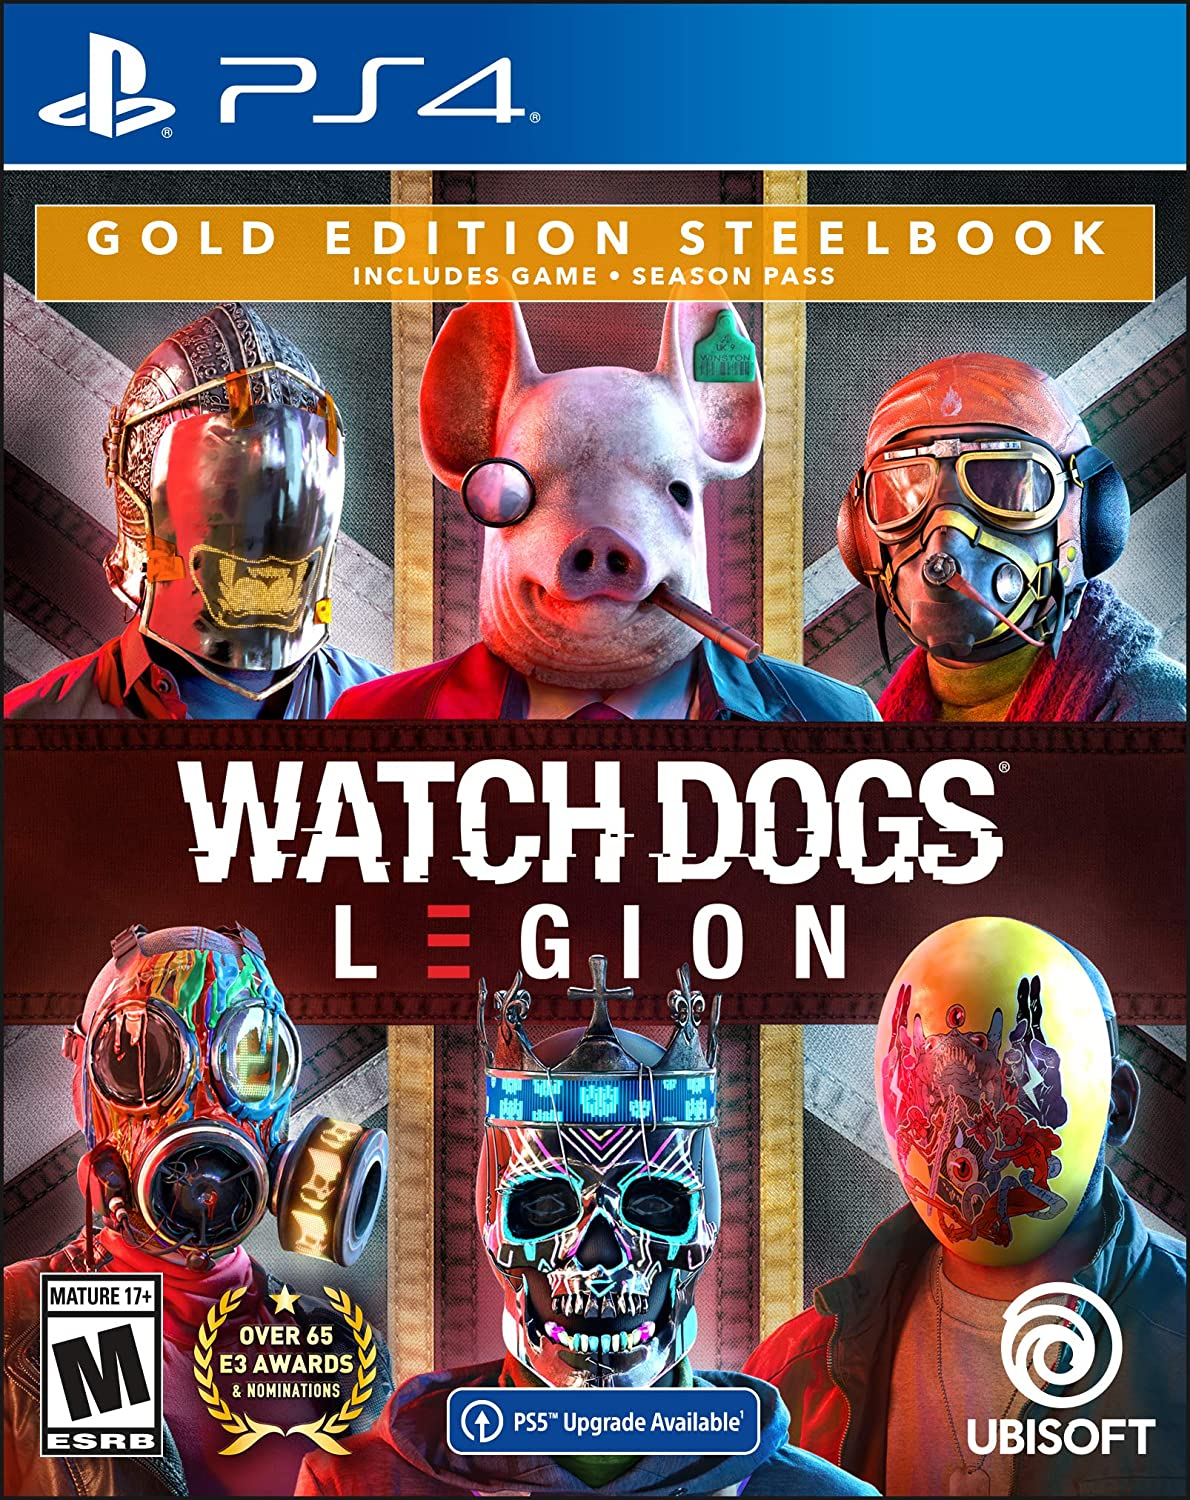 Watch Dogs: Legion wholesale PlayStation 4 Edition with fre Gold online shopping Steelbook